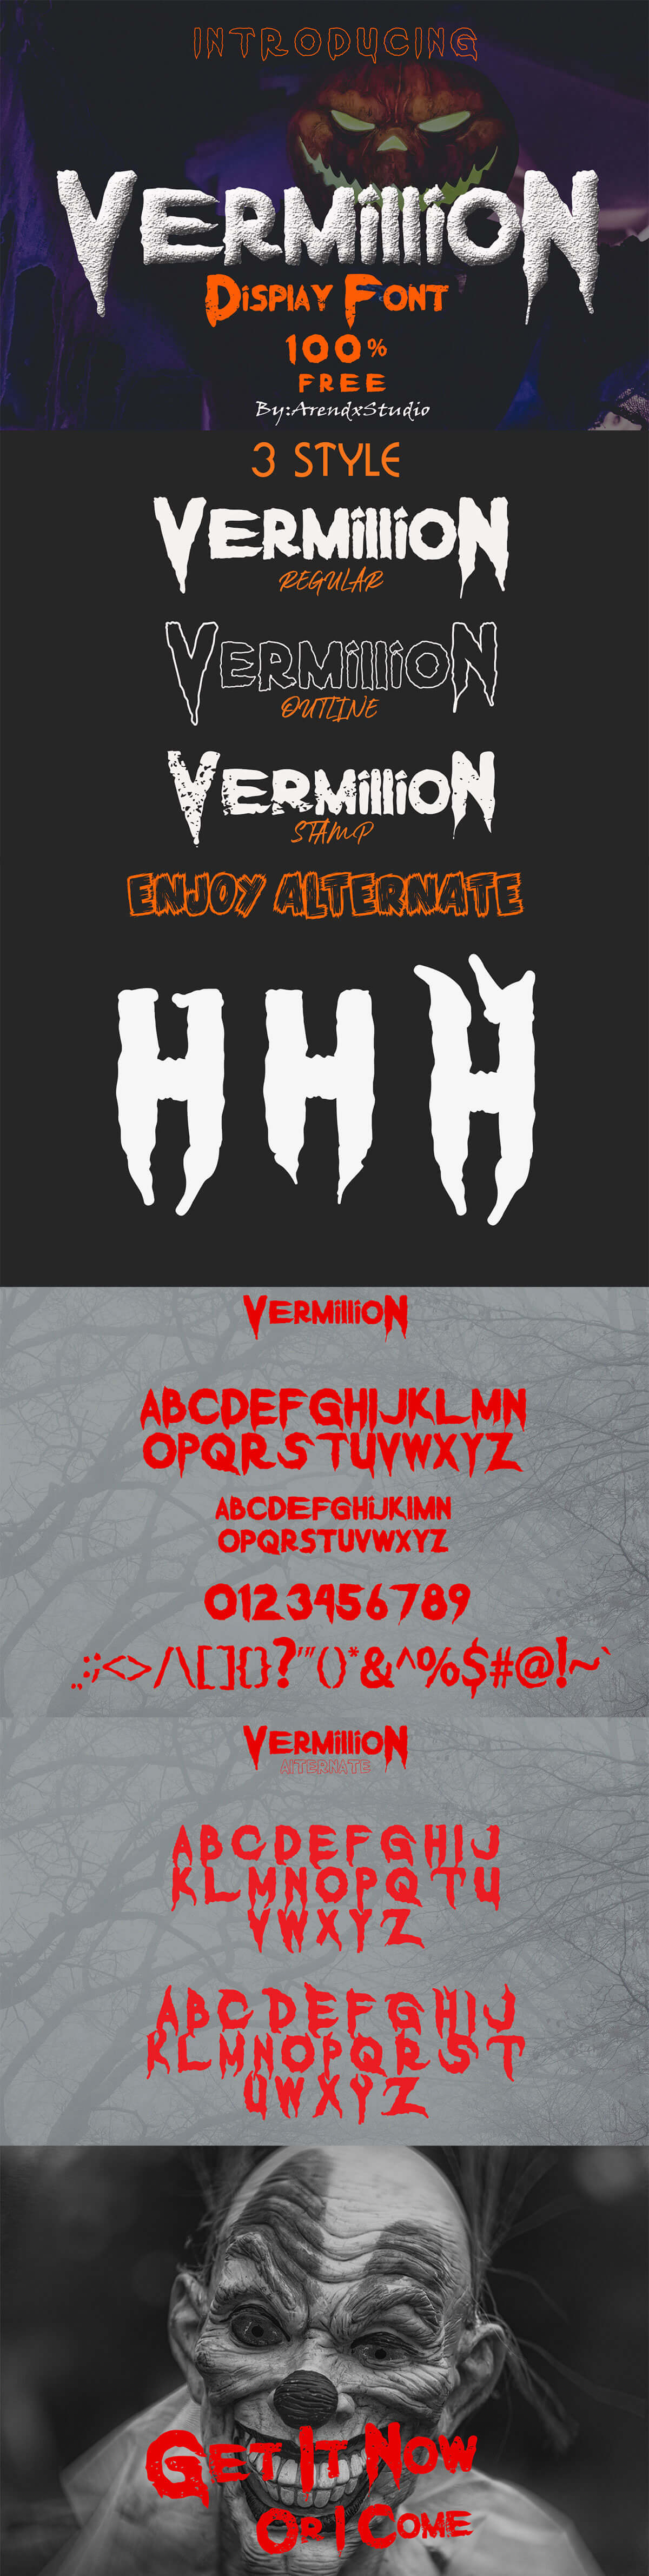 Free Vermillion Display Font